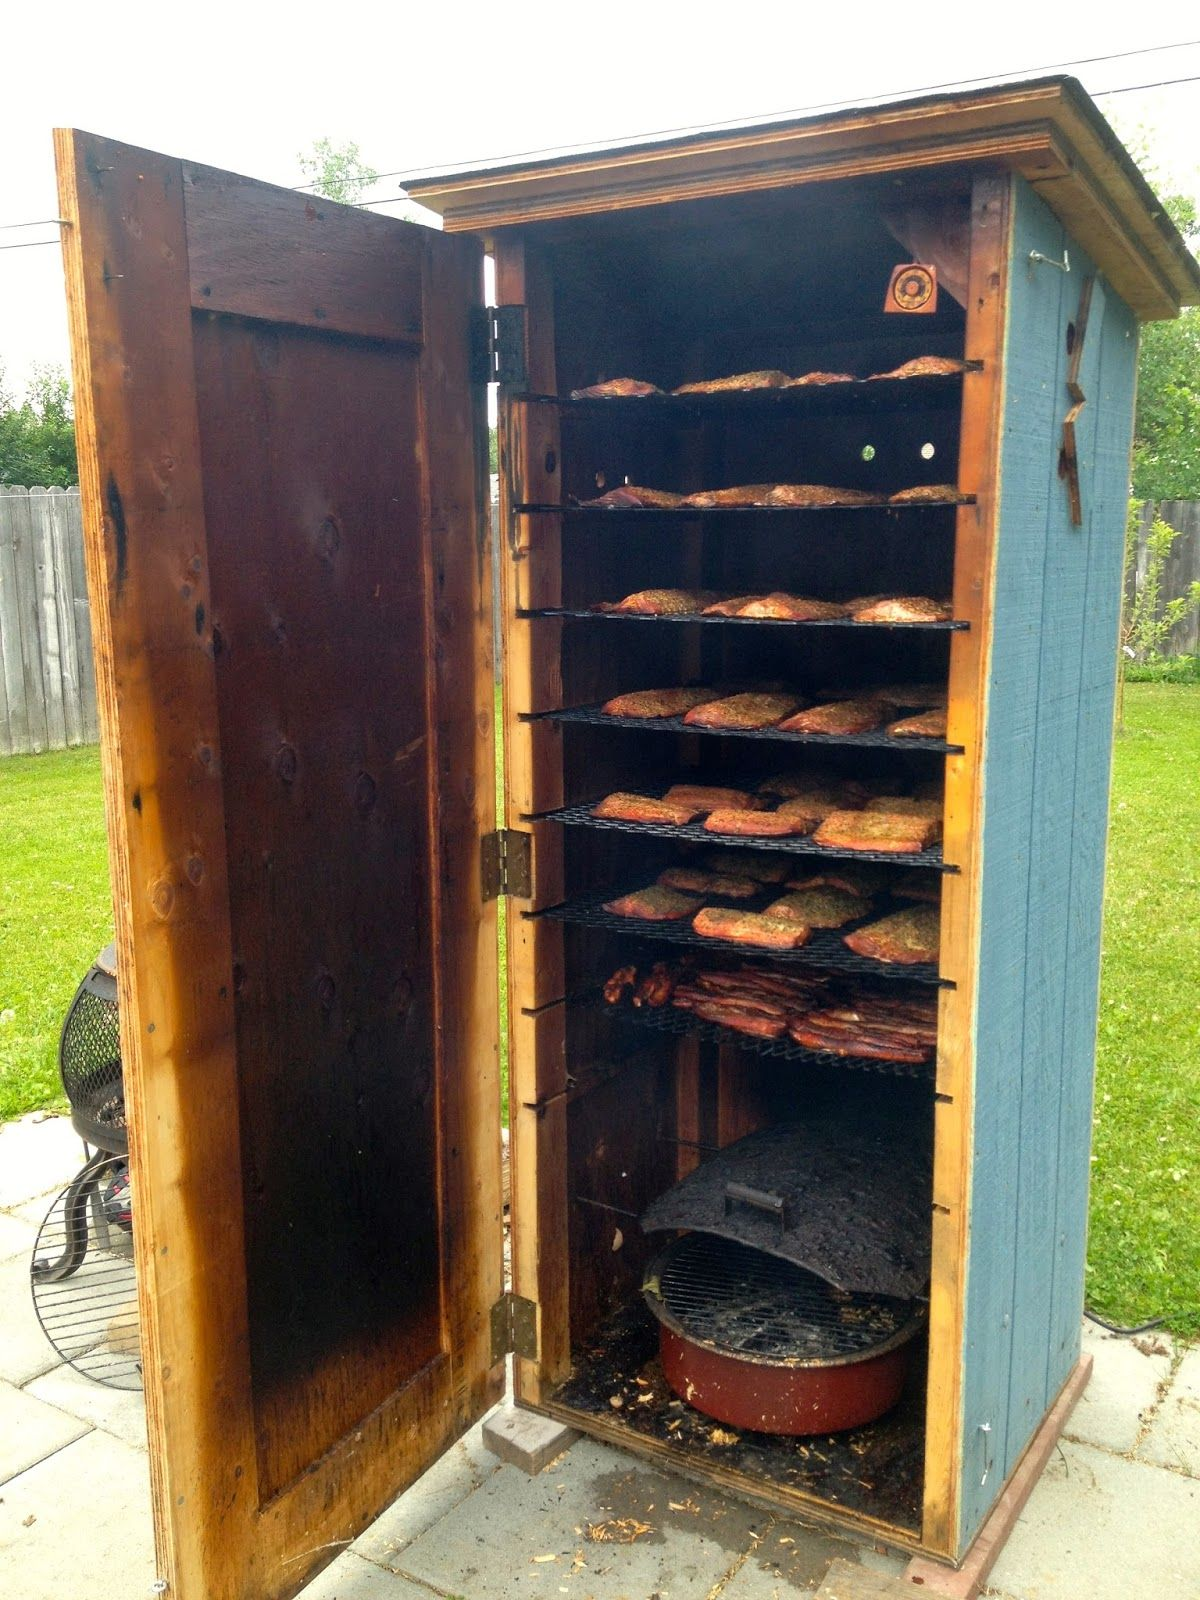 Stand Up Smoker Designs : Homemade meat smokers to add smoked flavor to meat or fish